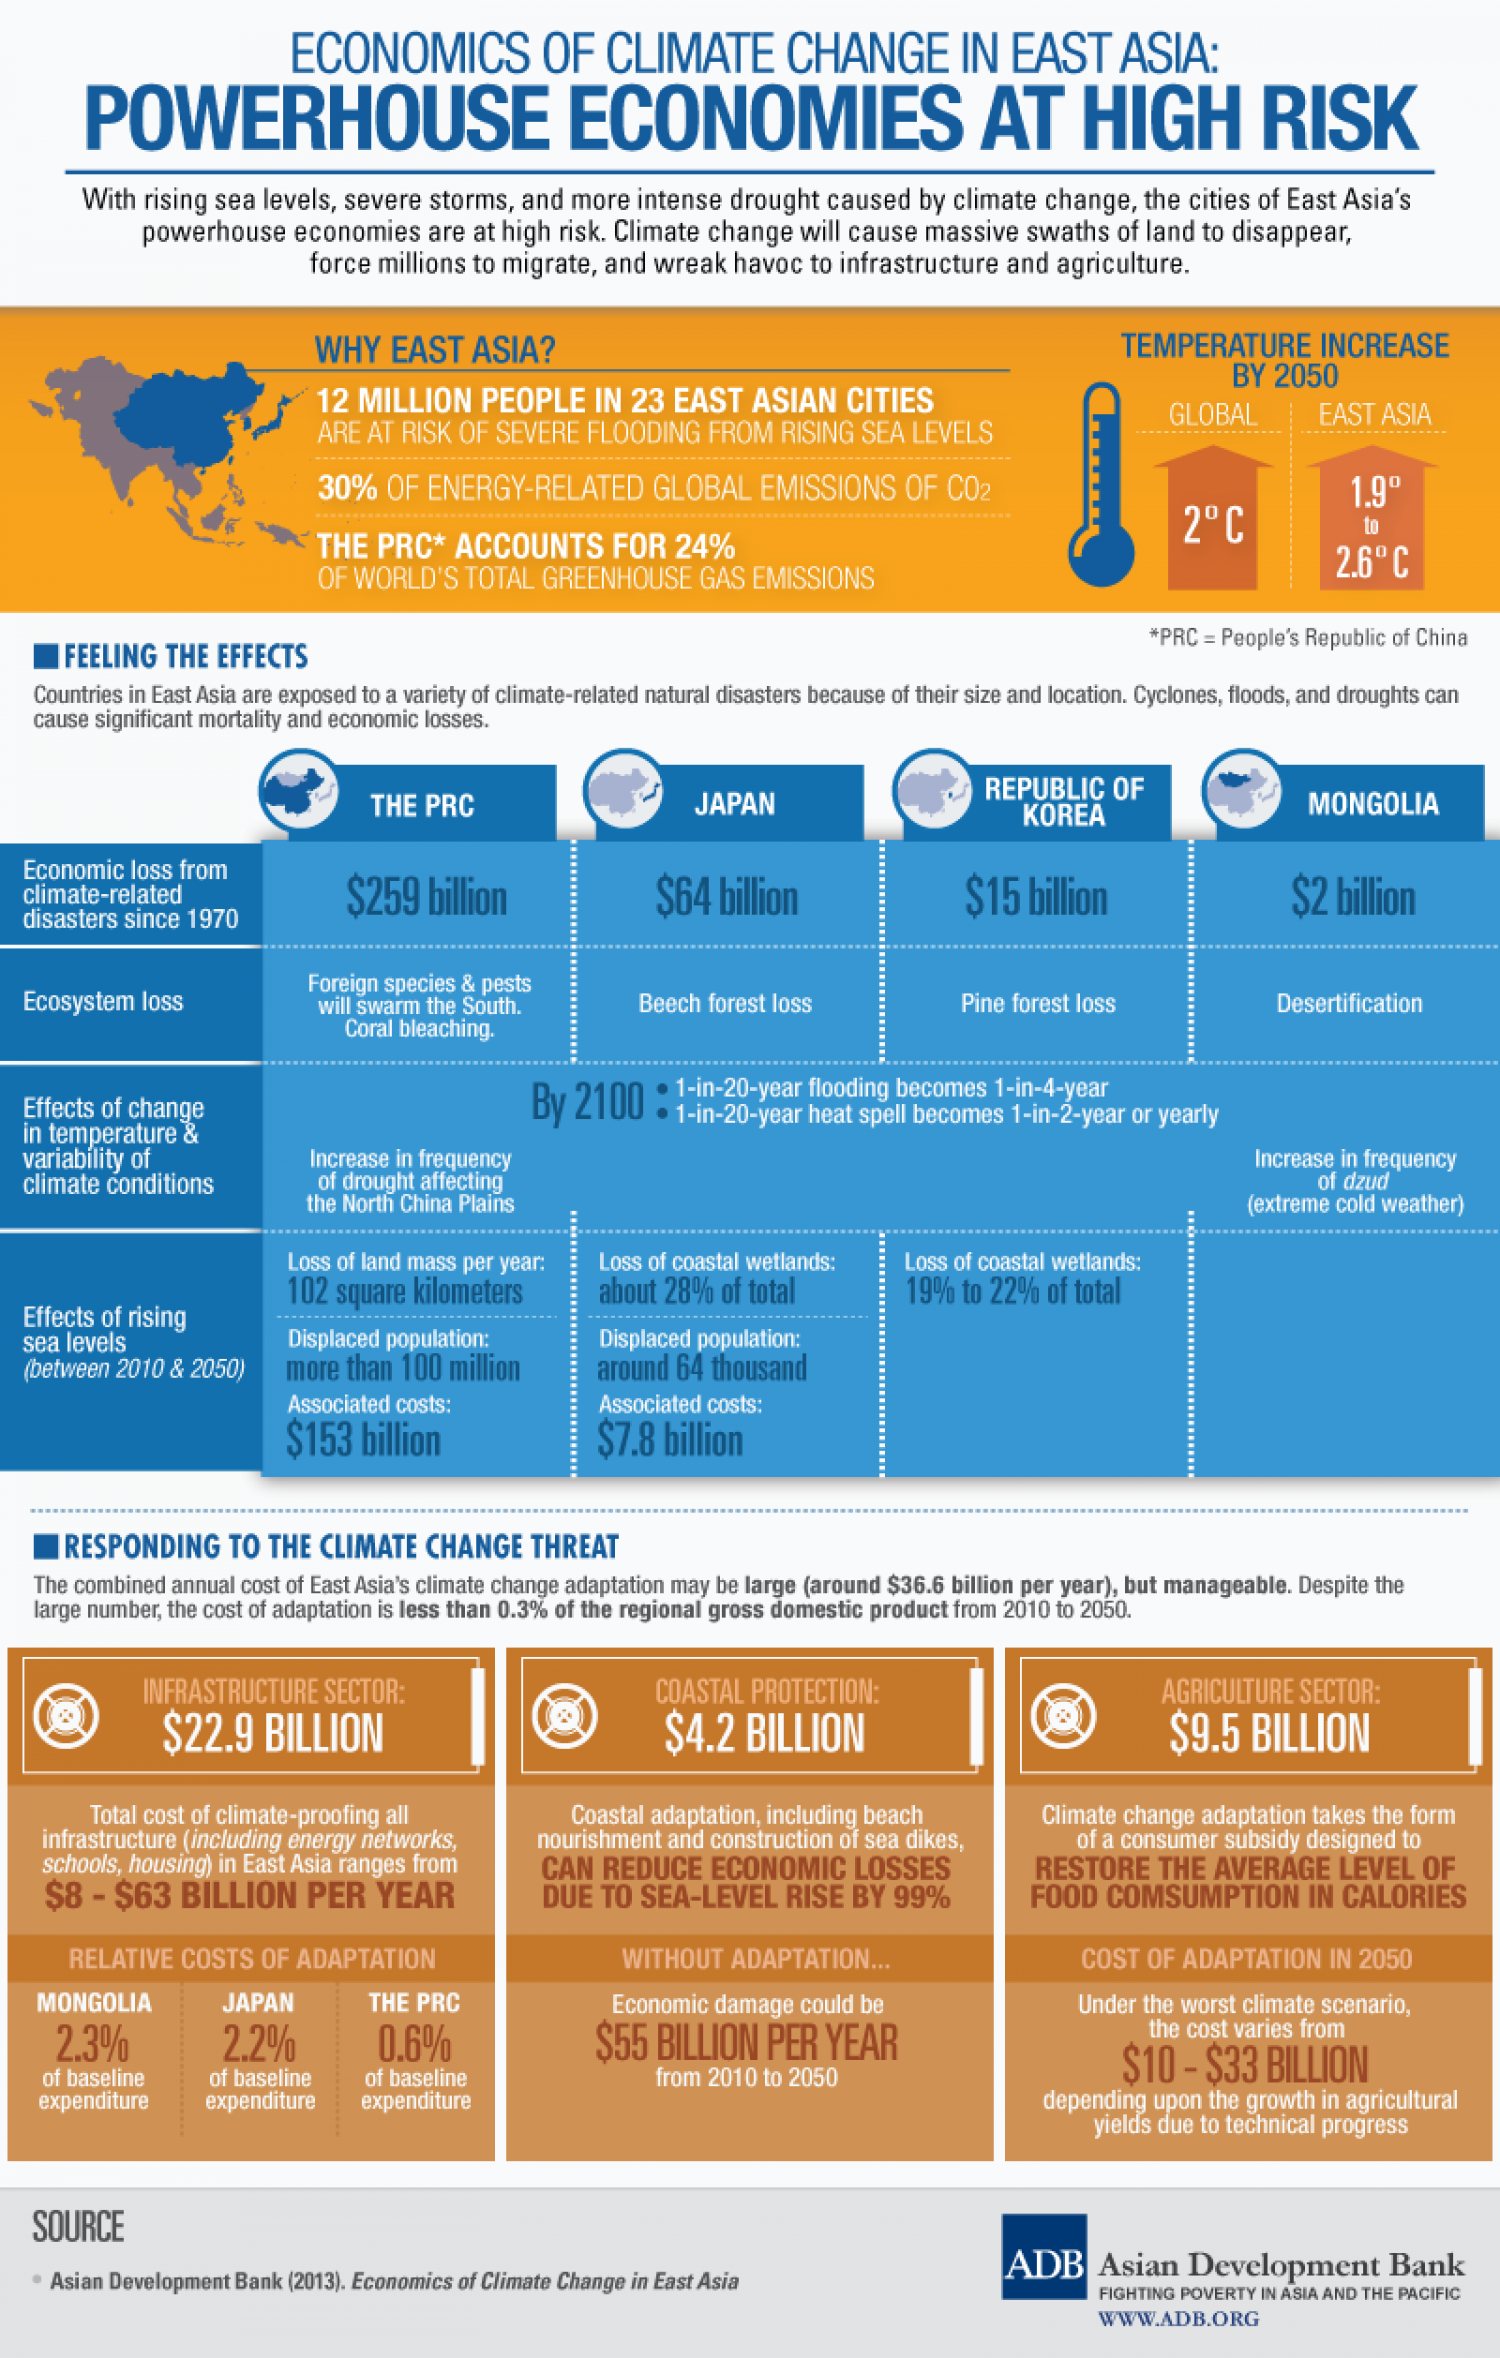 Powerhouse Economies at High Risk Infographic